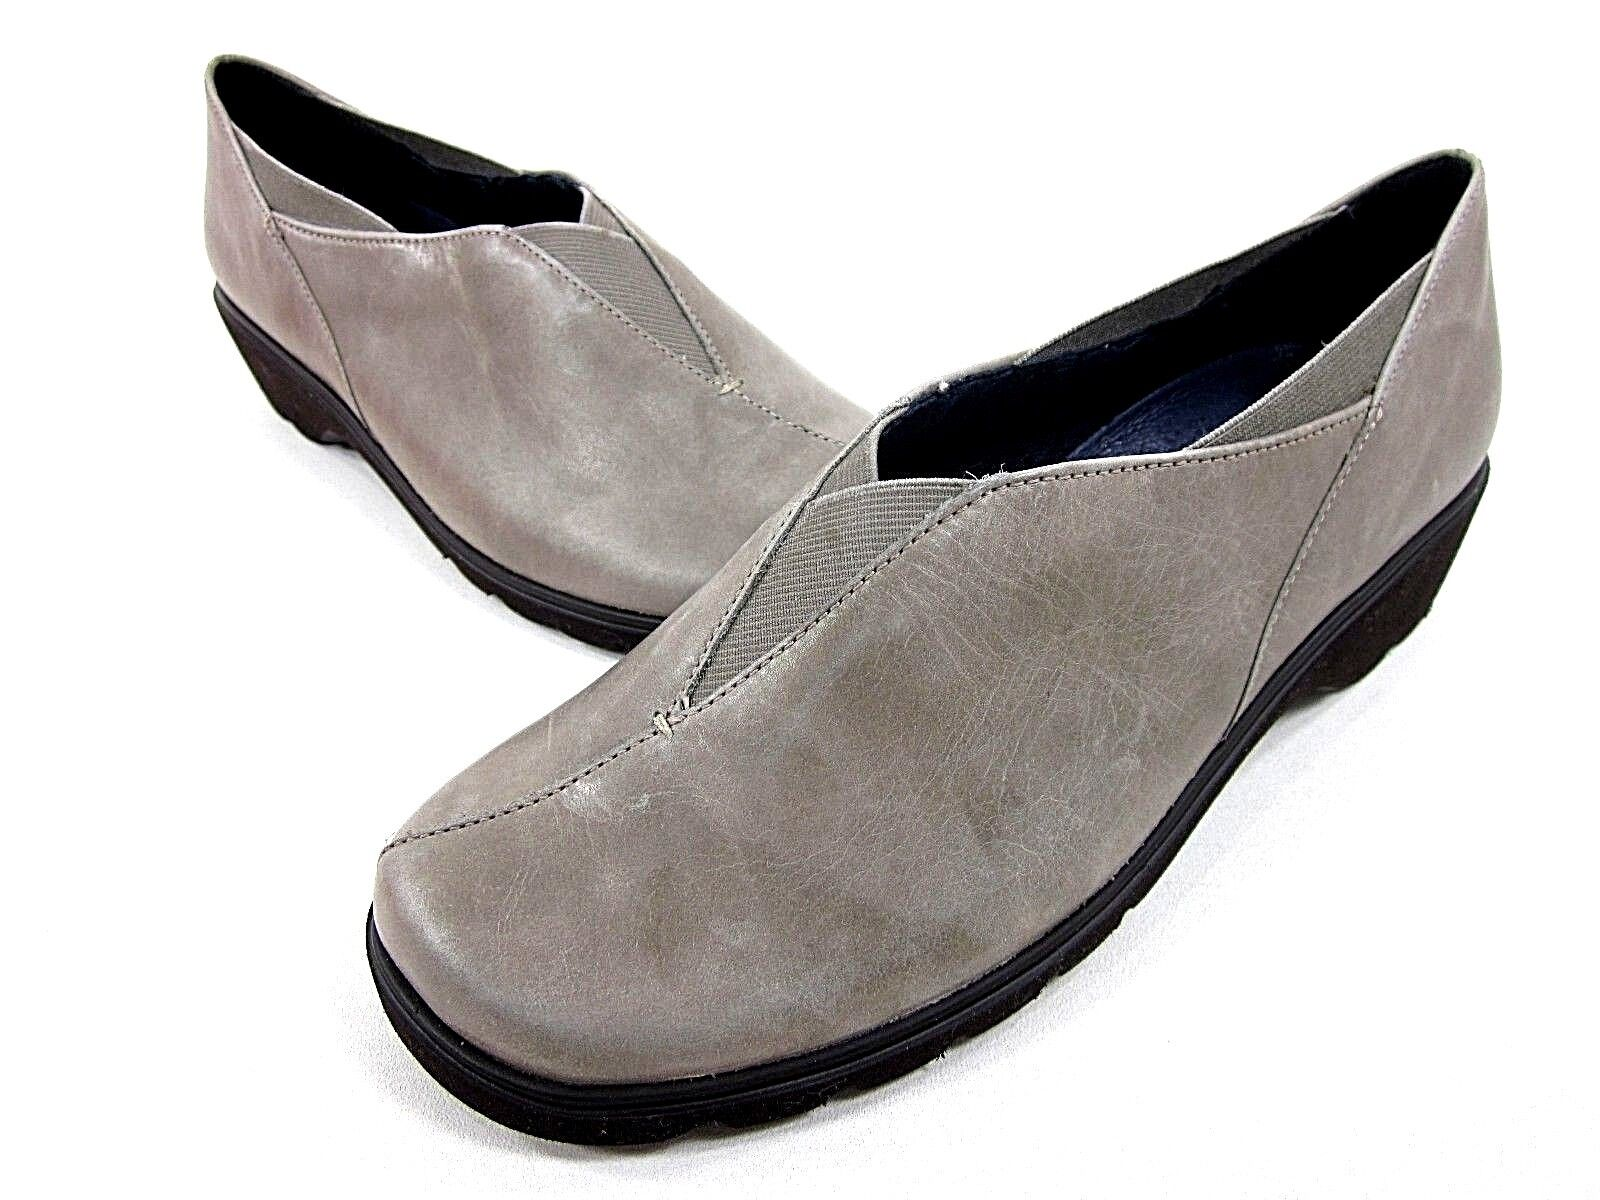 ARA ANDRO SLIP-ON WOMEN'S TAUPE LEATHER US NEW/ SIZE 6 W LEATHER NEW/ US DISPLAY 3415f1